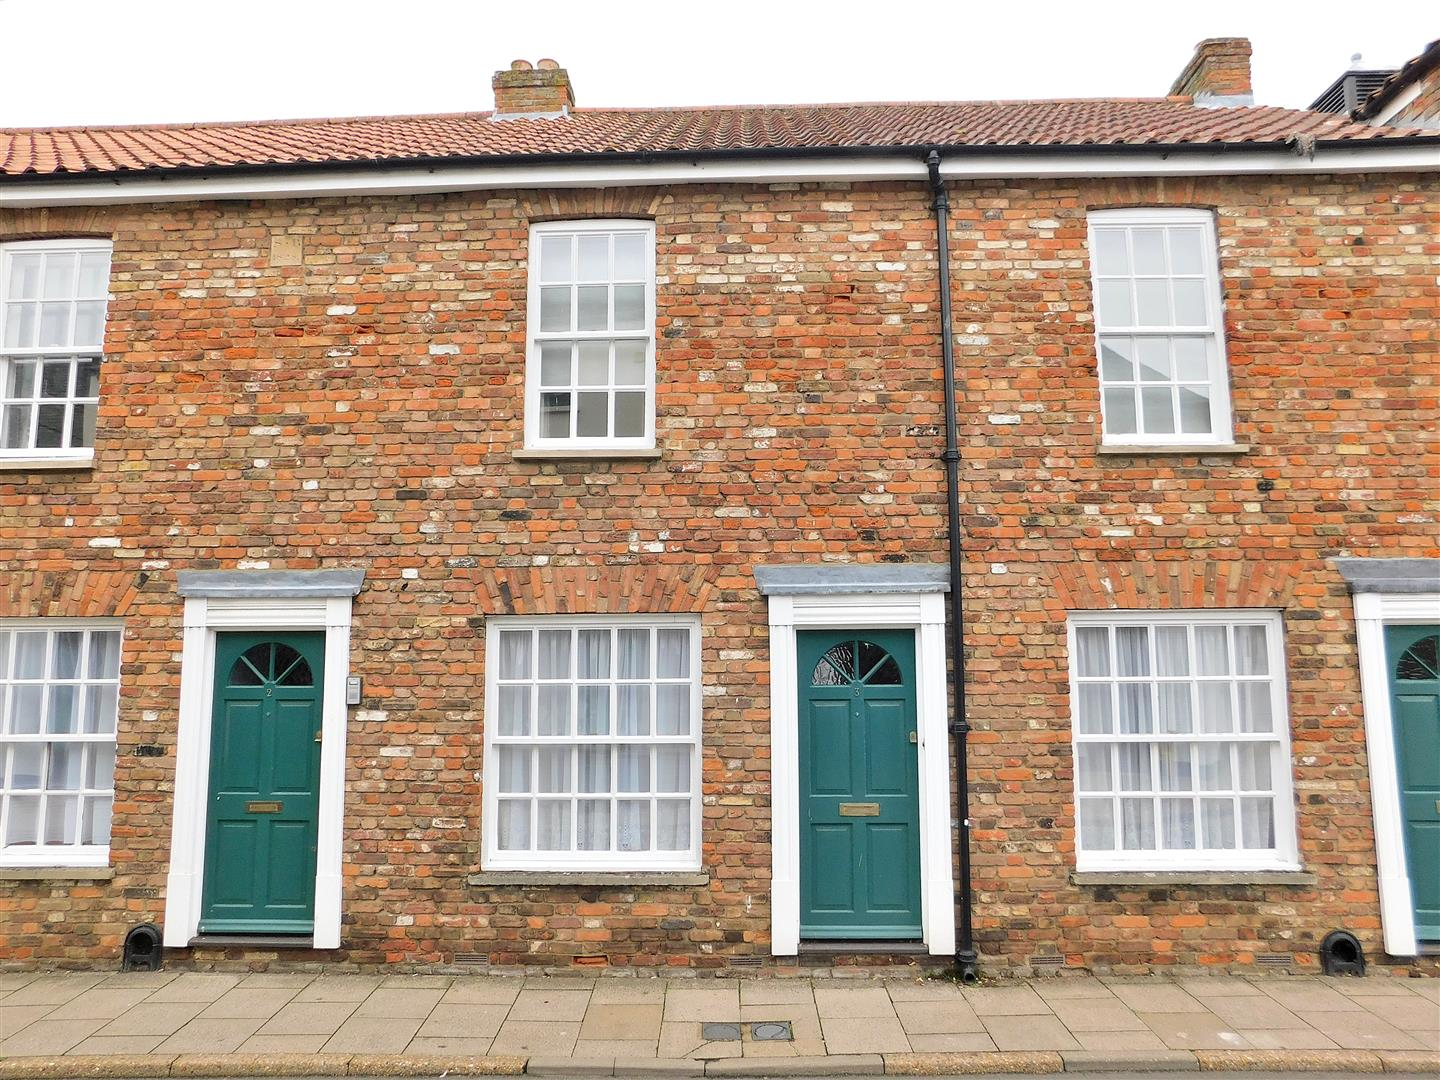 2 bed flat for sale in King's Lynn, PE30 1EG  - Property Image 1